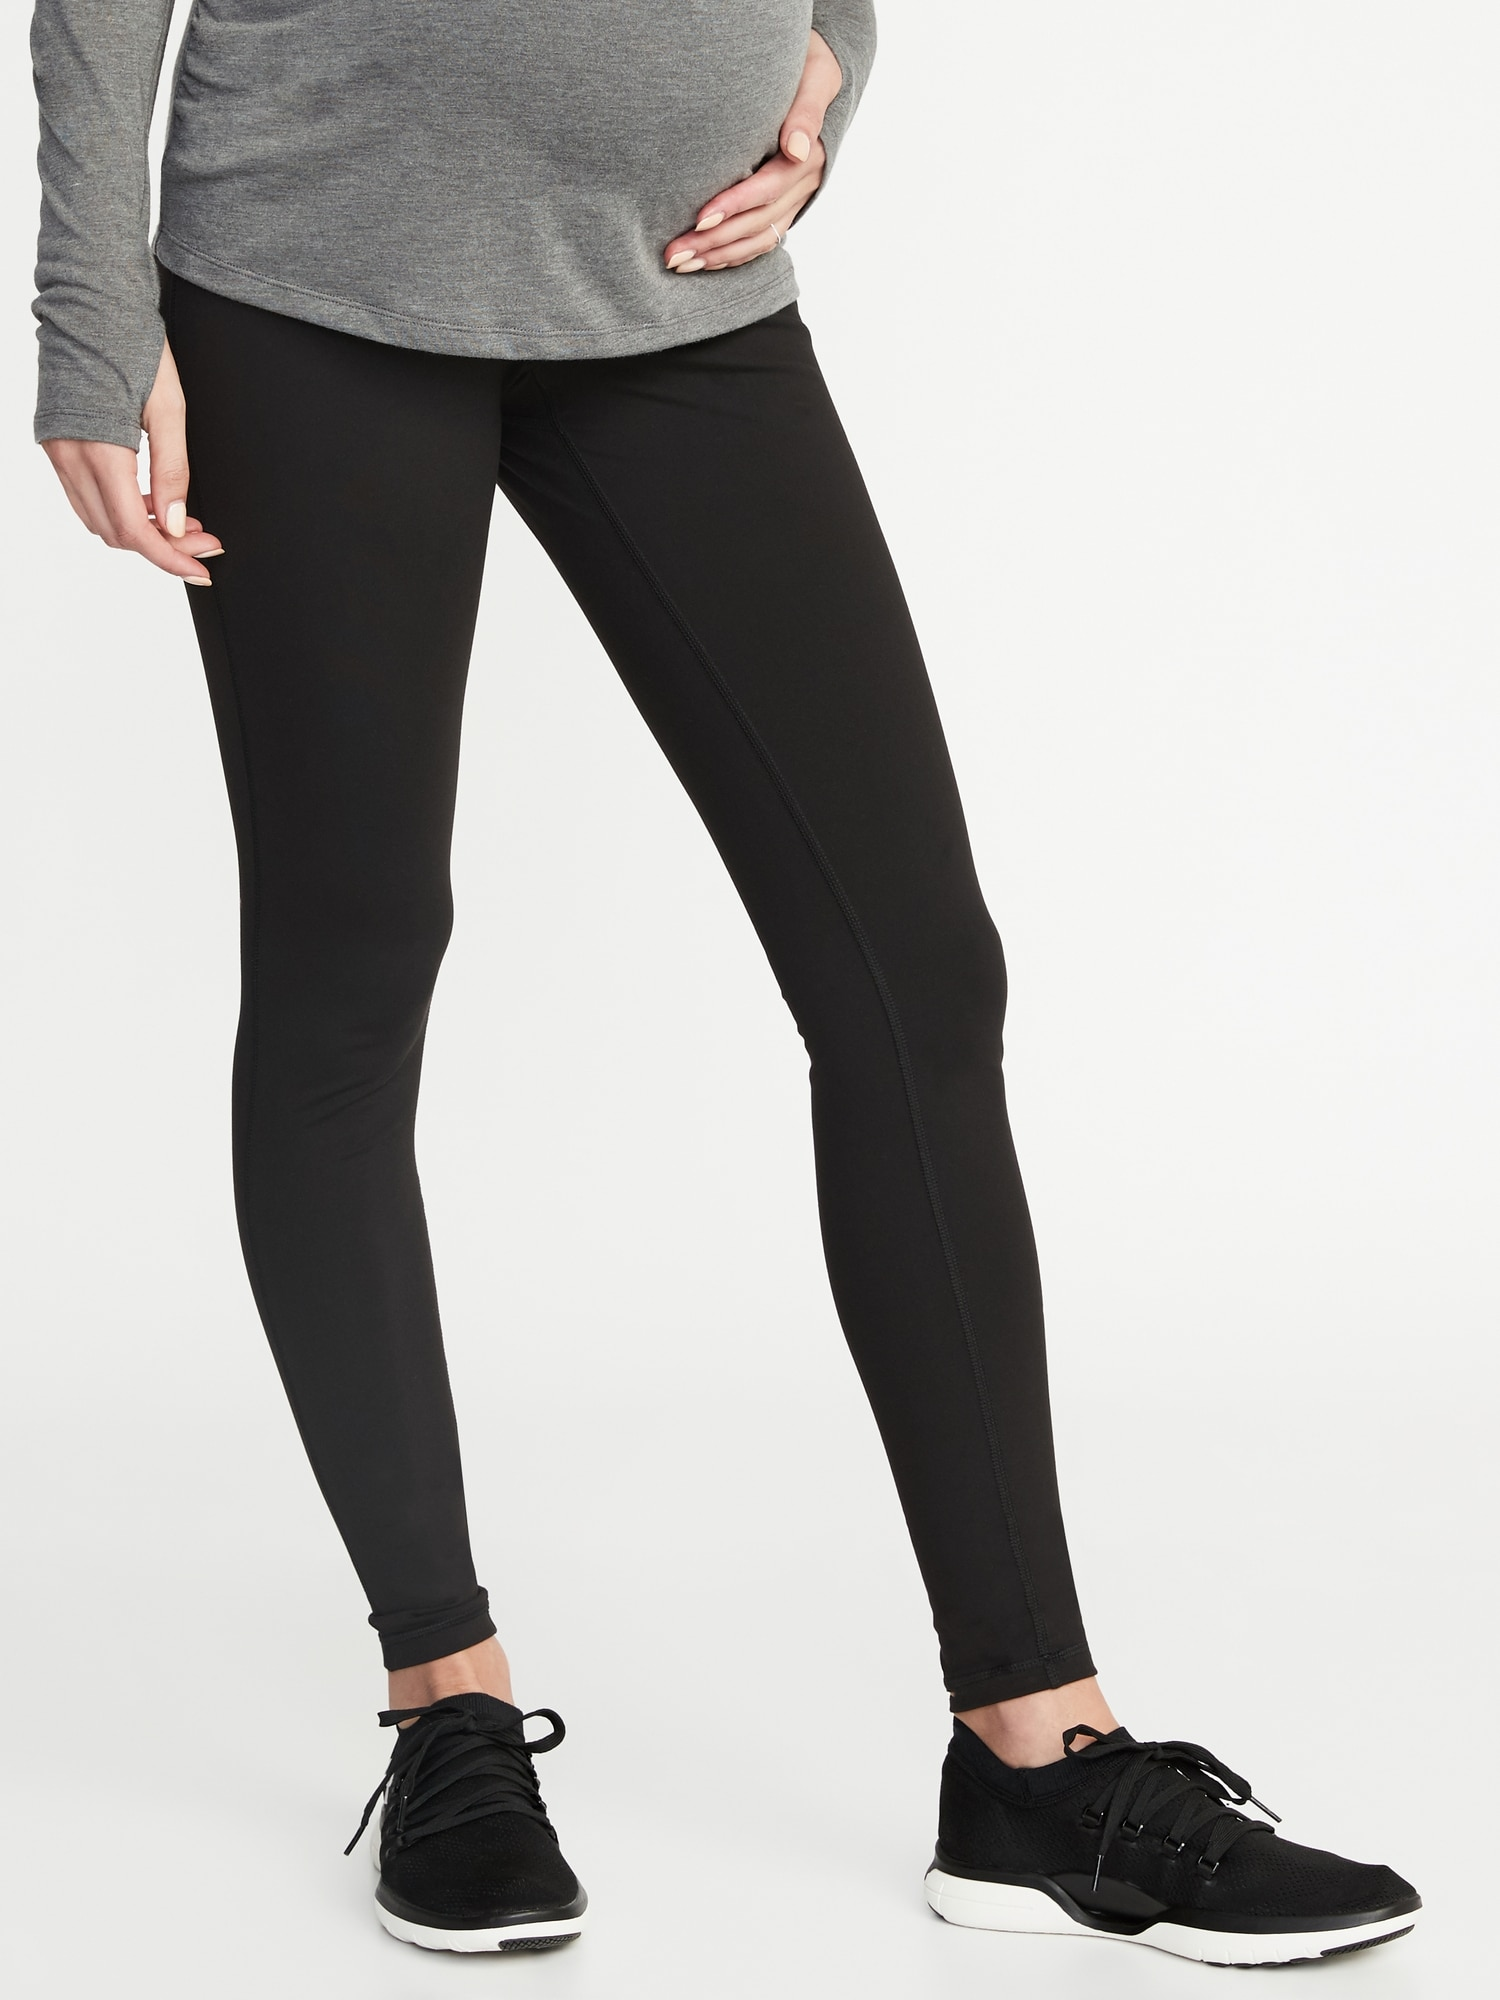 Maternity High Waisted Elevate Compression Leggings Old Navy